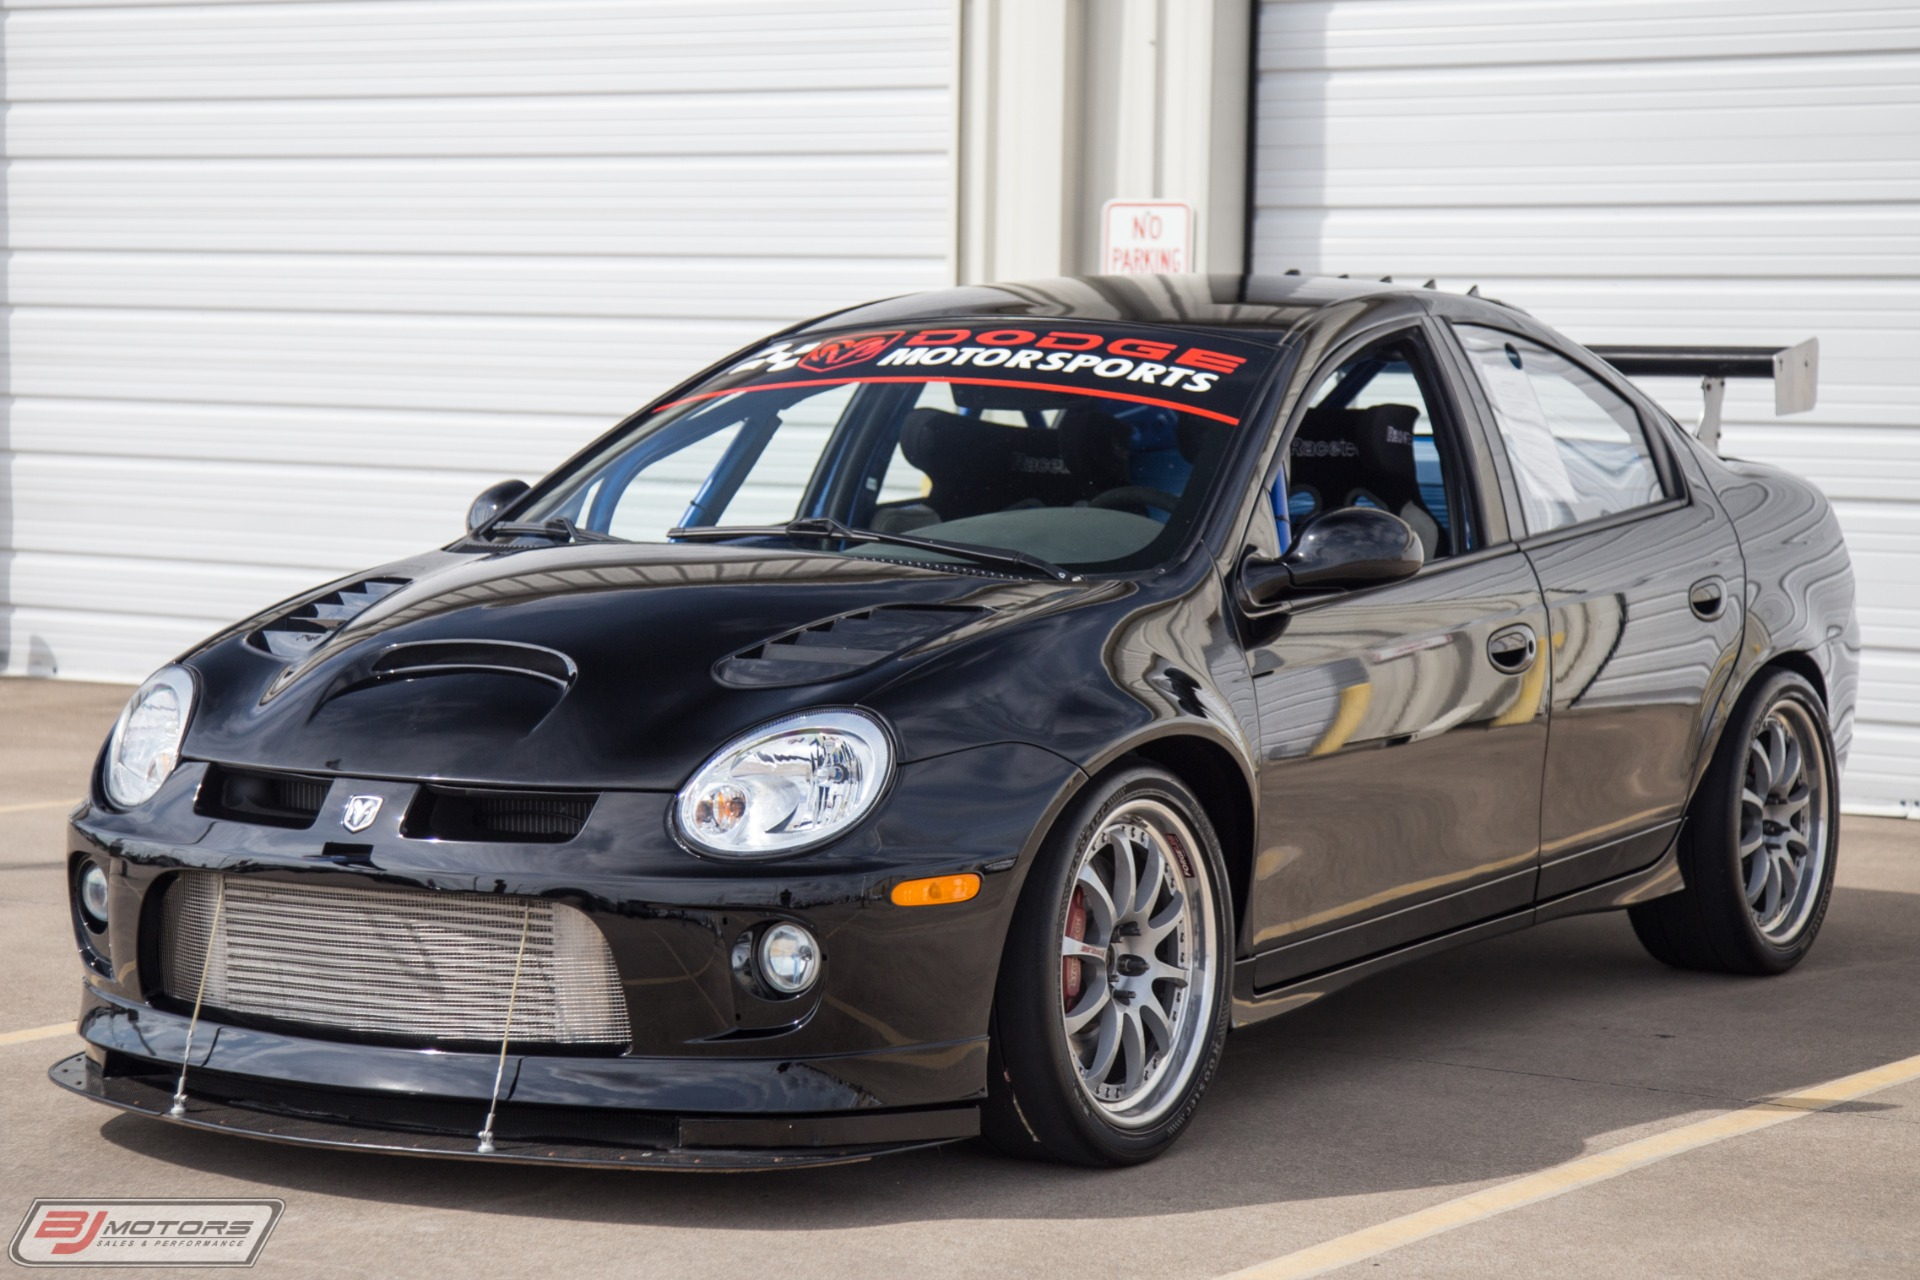 used 2004 dodge neon srt 4 race car srt4 race car for sale 15 995 bj motors stock 4d605495